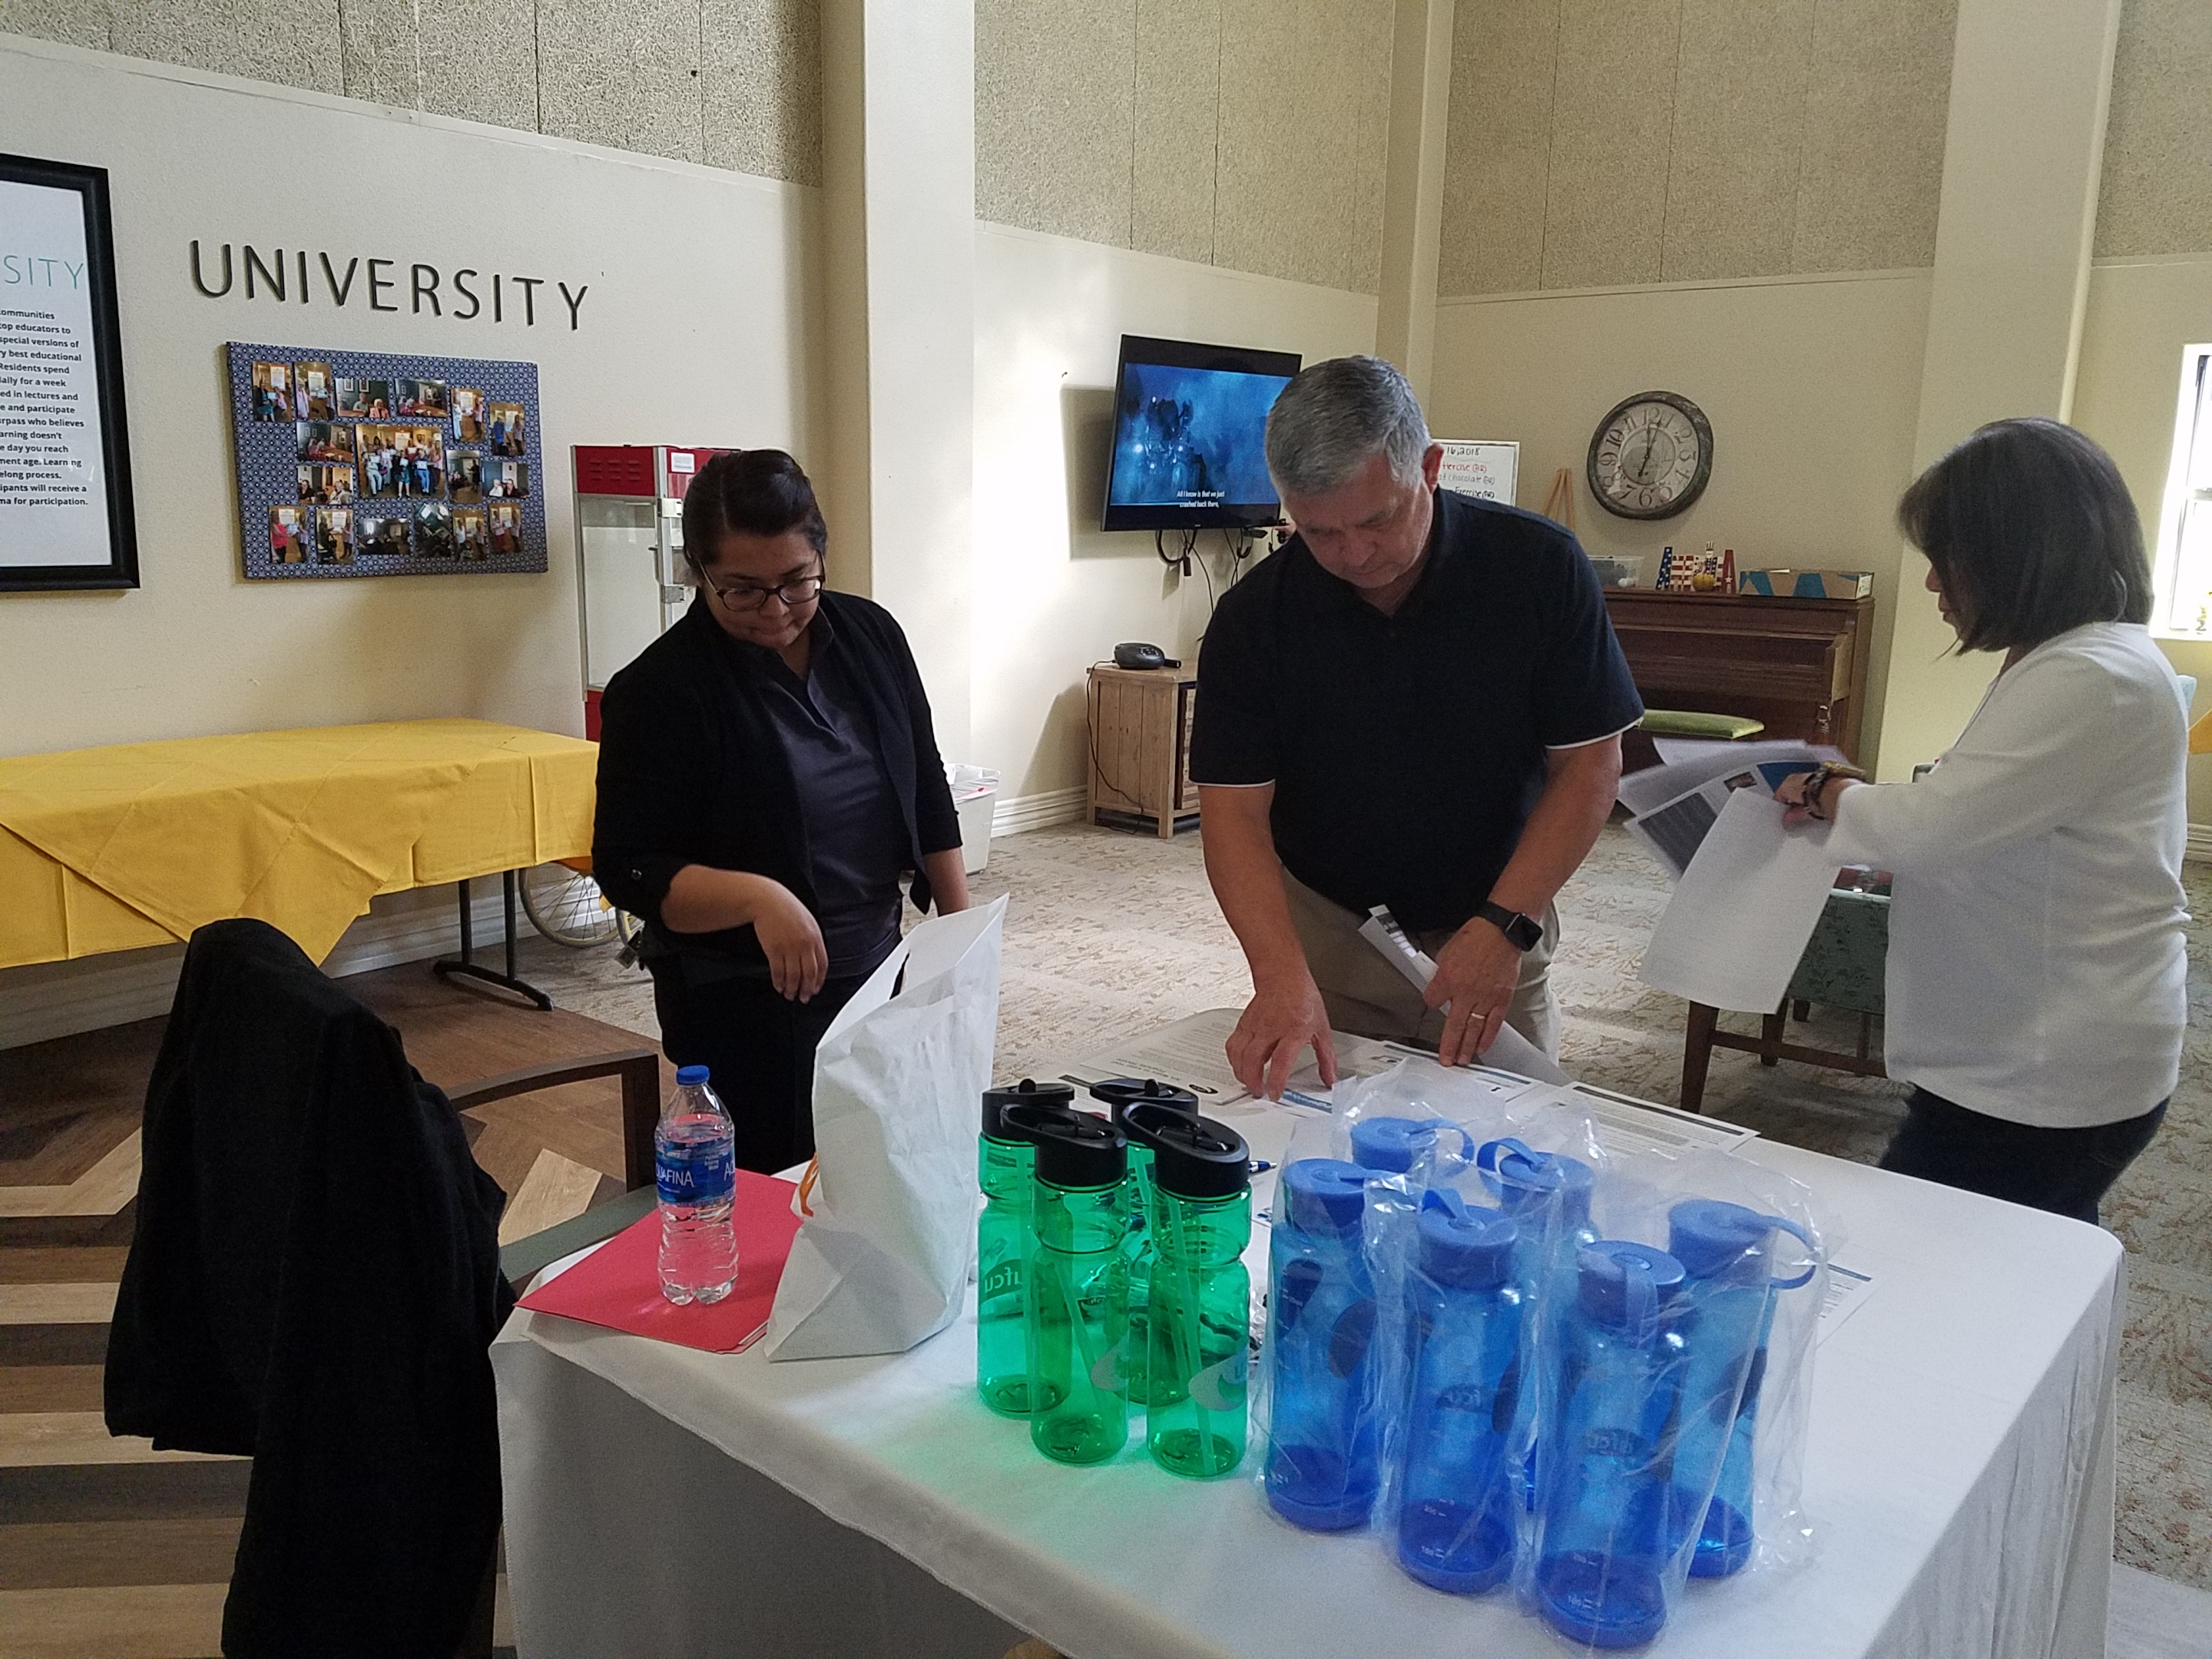 Tony Rosas with University Federal Credit Union sets up their display with Reina Morales and his wife, Gail, prior to his presentation on banking safety.